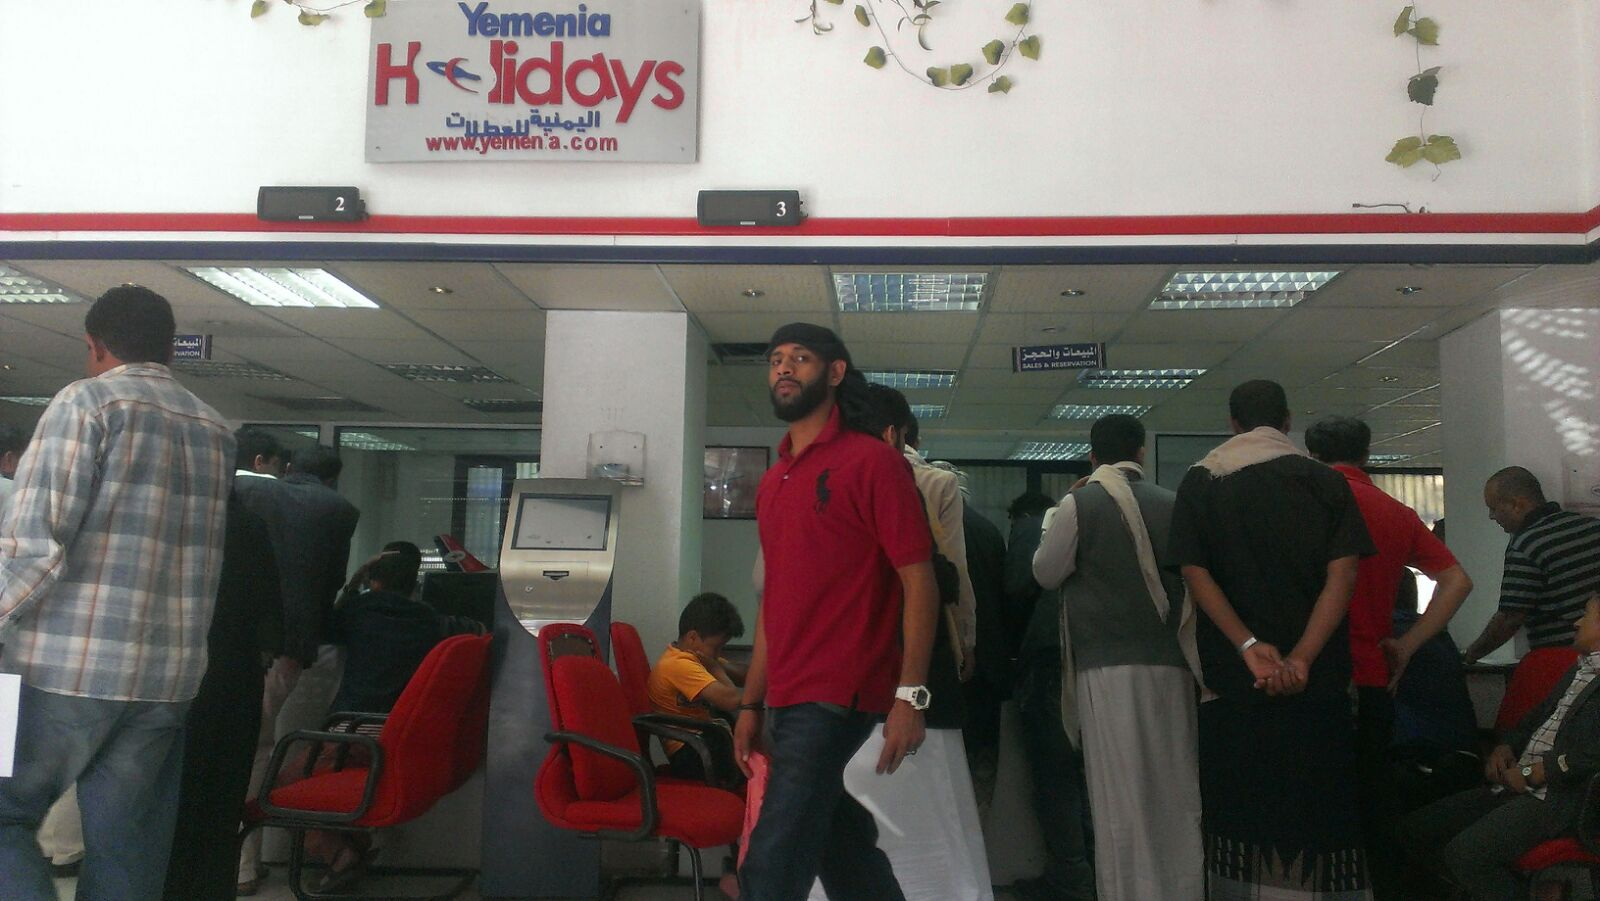 The Yemenia Airline in the Yemeni capital Sana'a is booked up for weeks ahead